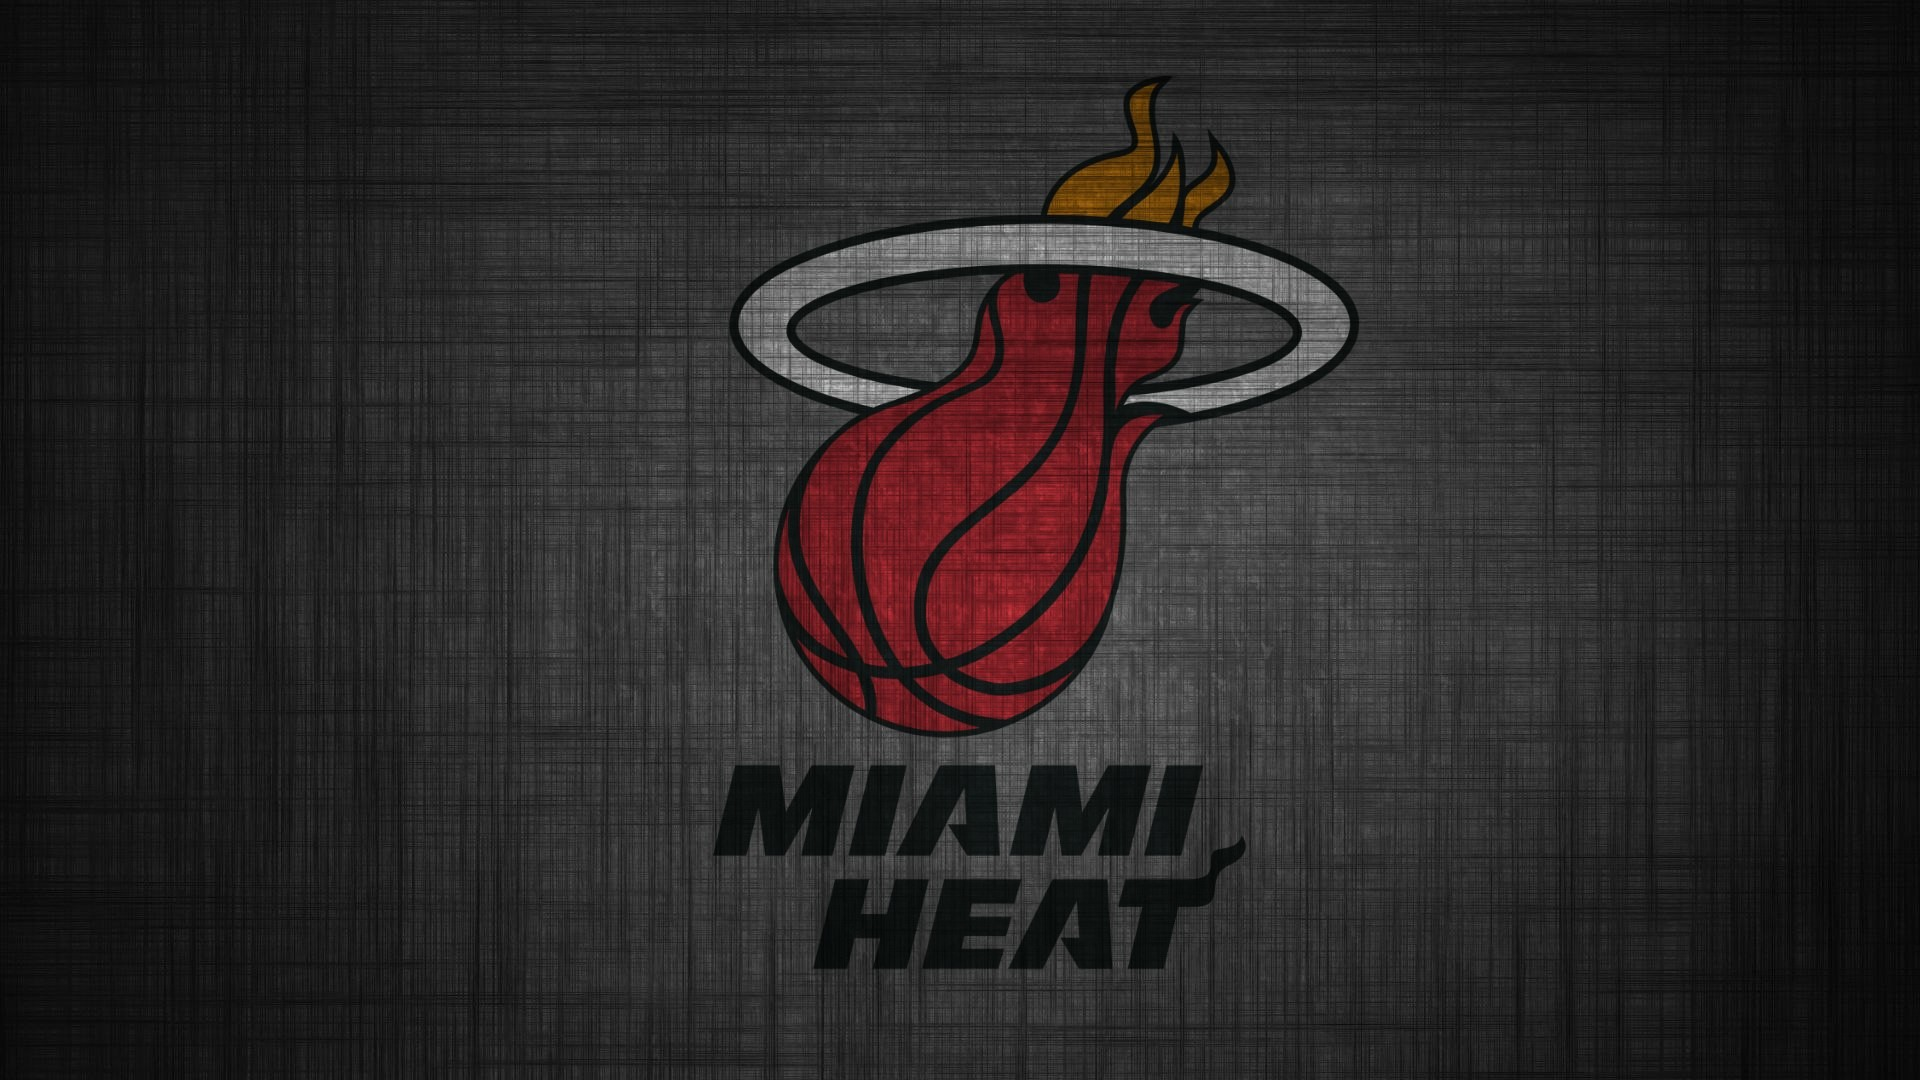 Miami Heat Wallpaper HD 2018 58 images 1920x1080